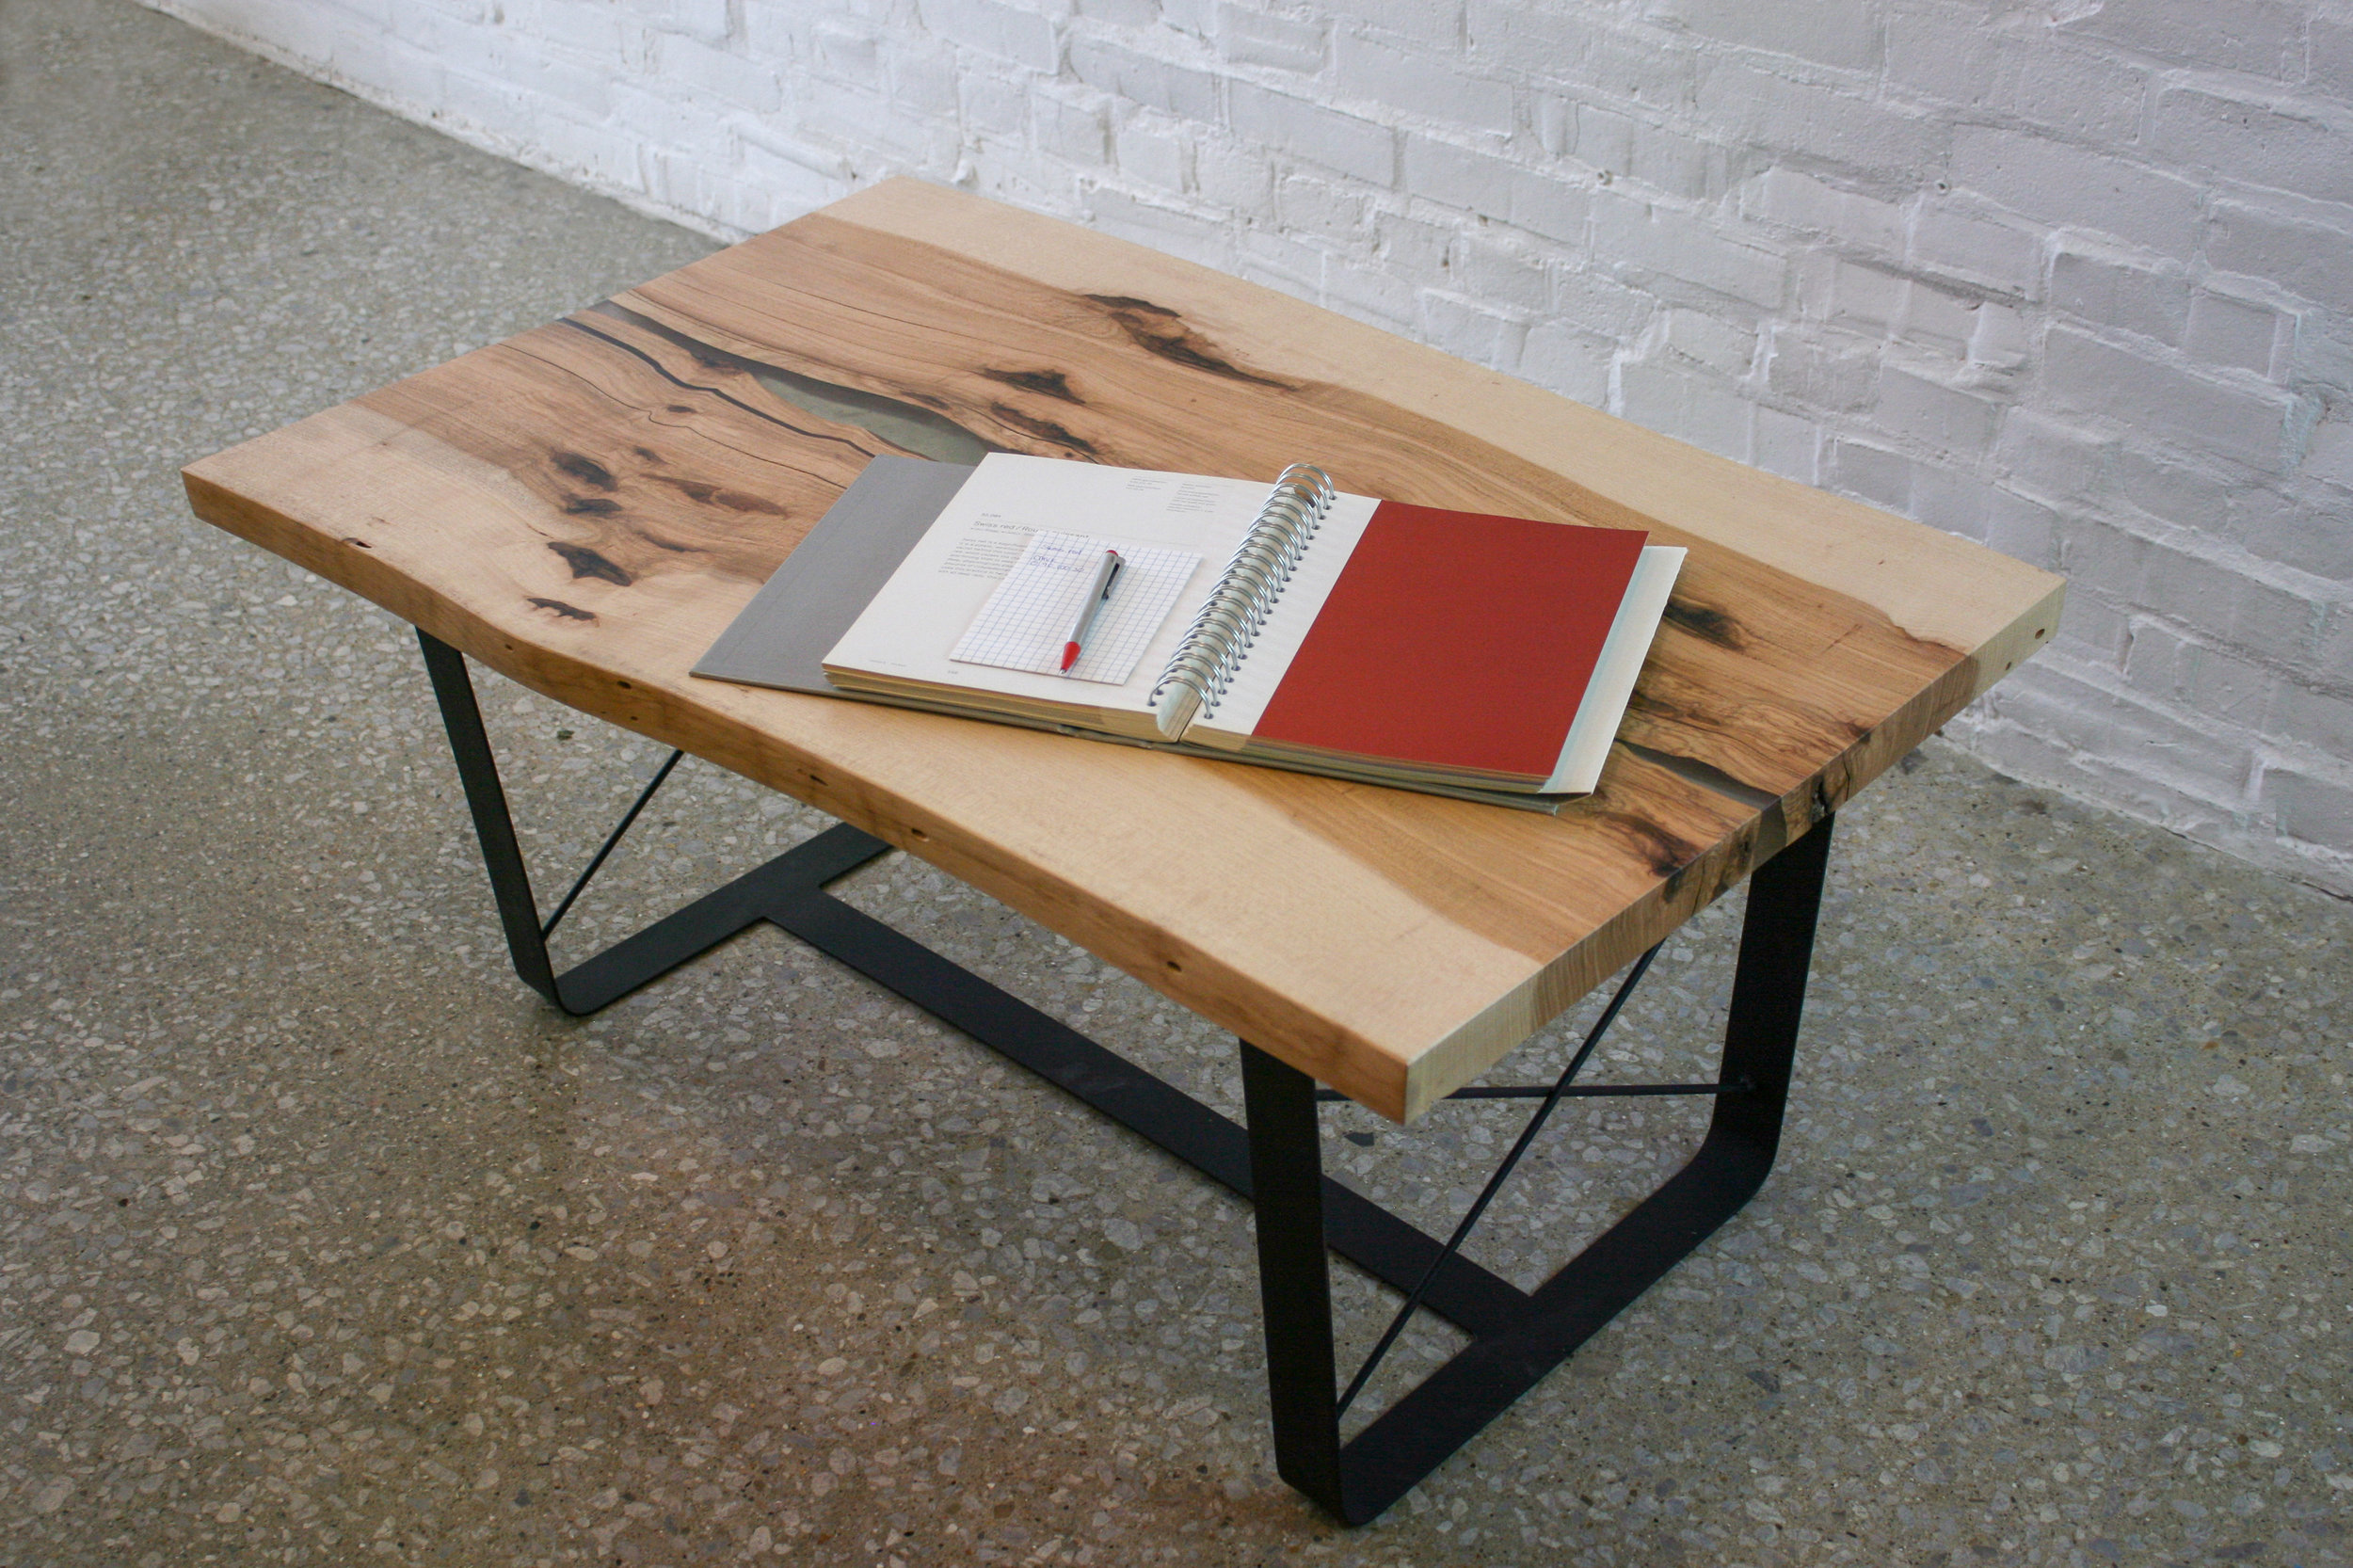 norden-at-home-custom-furniture-modern-hickory-coffee-table-1.jpg